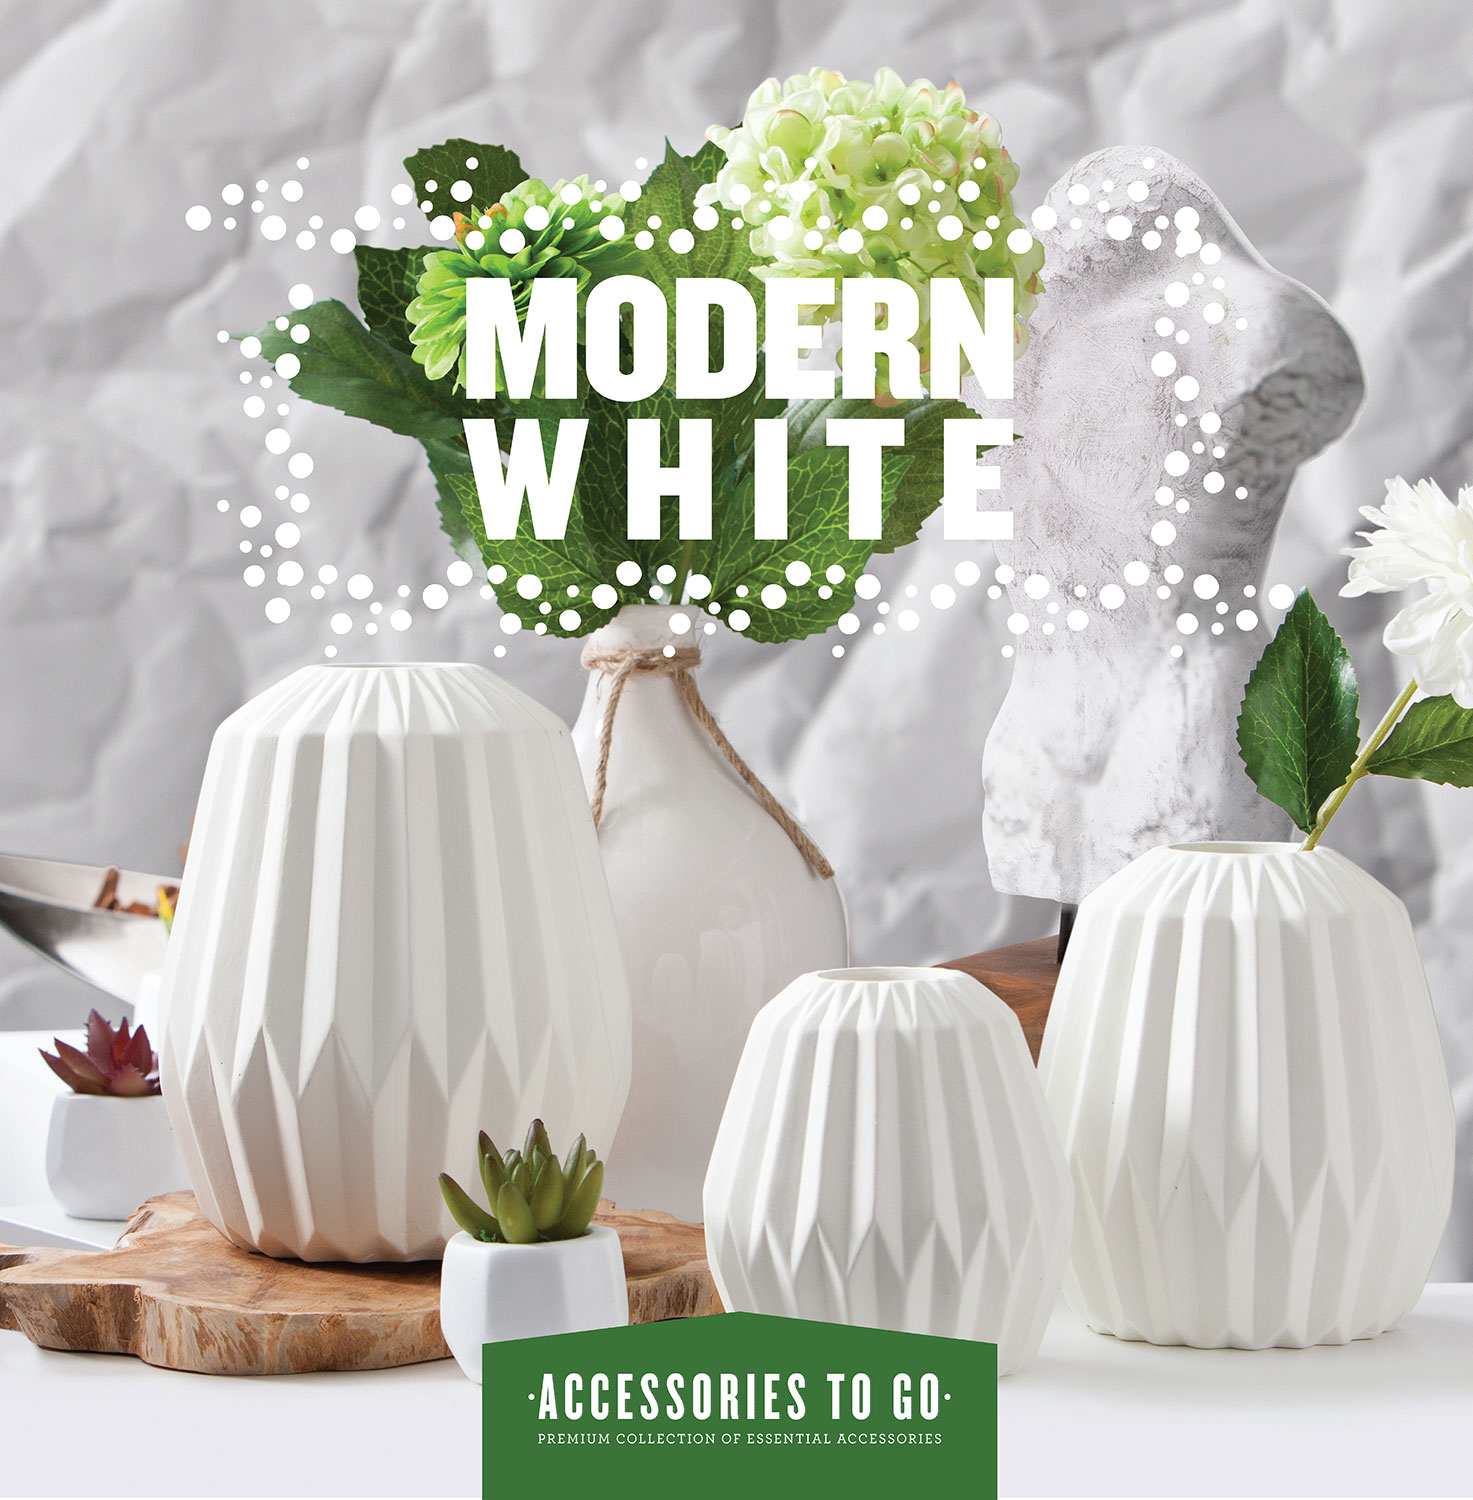 Home Accessories - Modern White 14-Piece Accessory Set